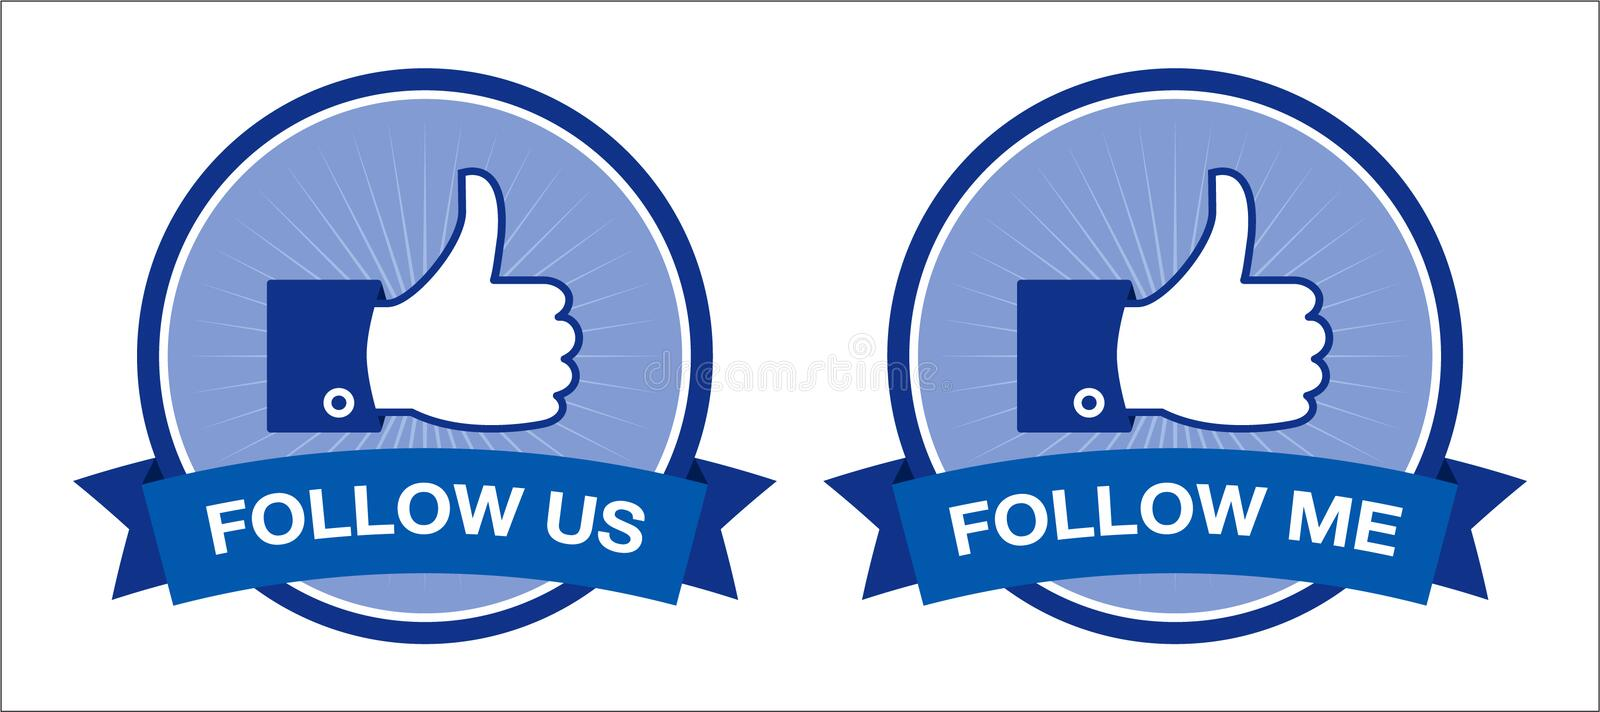 Facebook follow us / follow me buttons - retro. Set of vector retro facebook buttons isolated on white background. EPS available